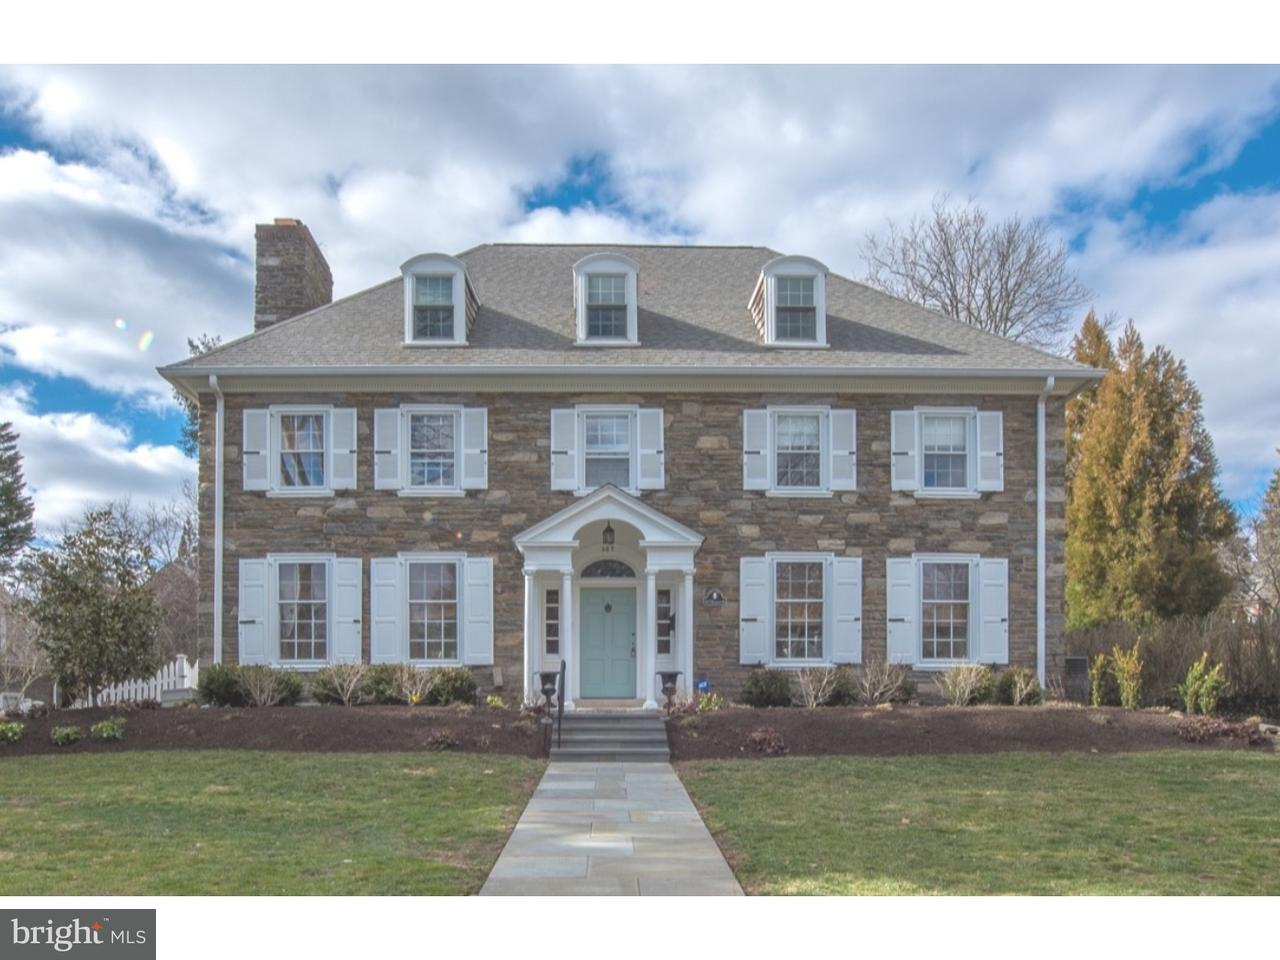 Single Family Home for Sale at 367 BROOKWAY Road Merion Station, Pennsylvania 19066 United States